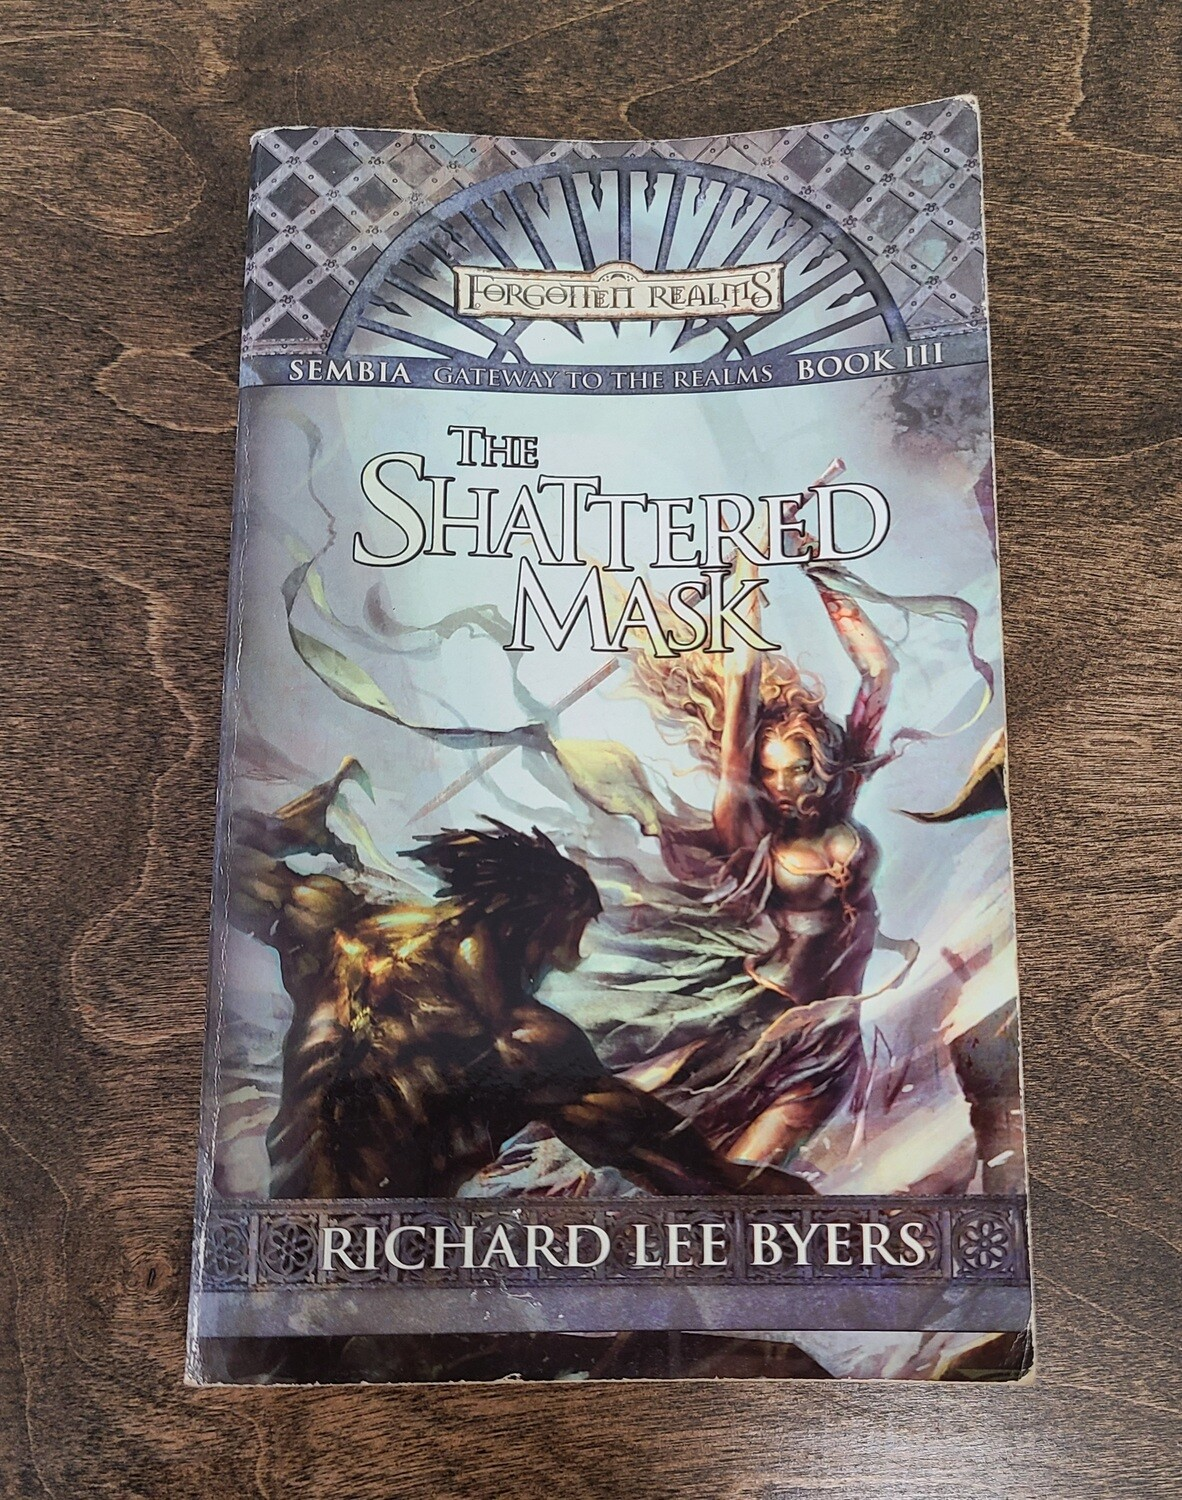 Gateway to the Realms: The Shattered Mask by Richard Lee Byers